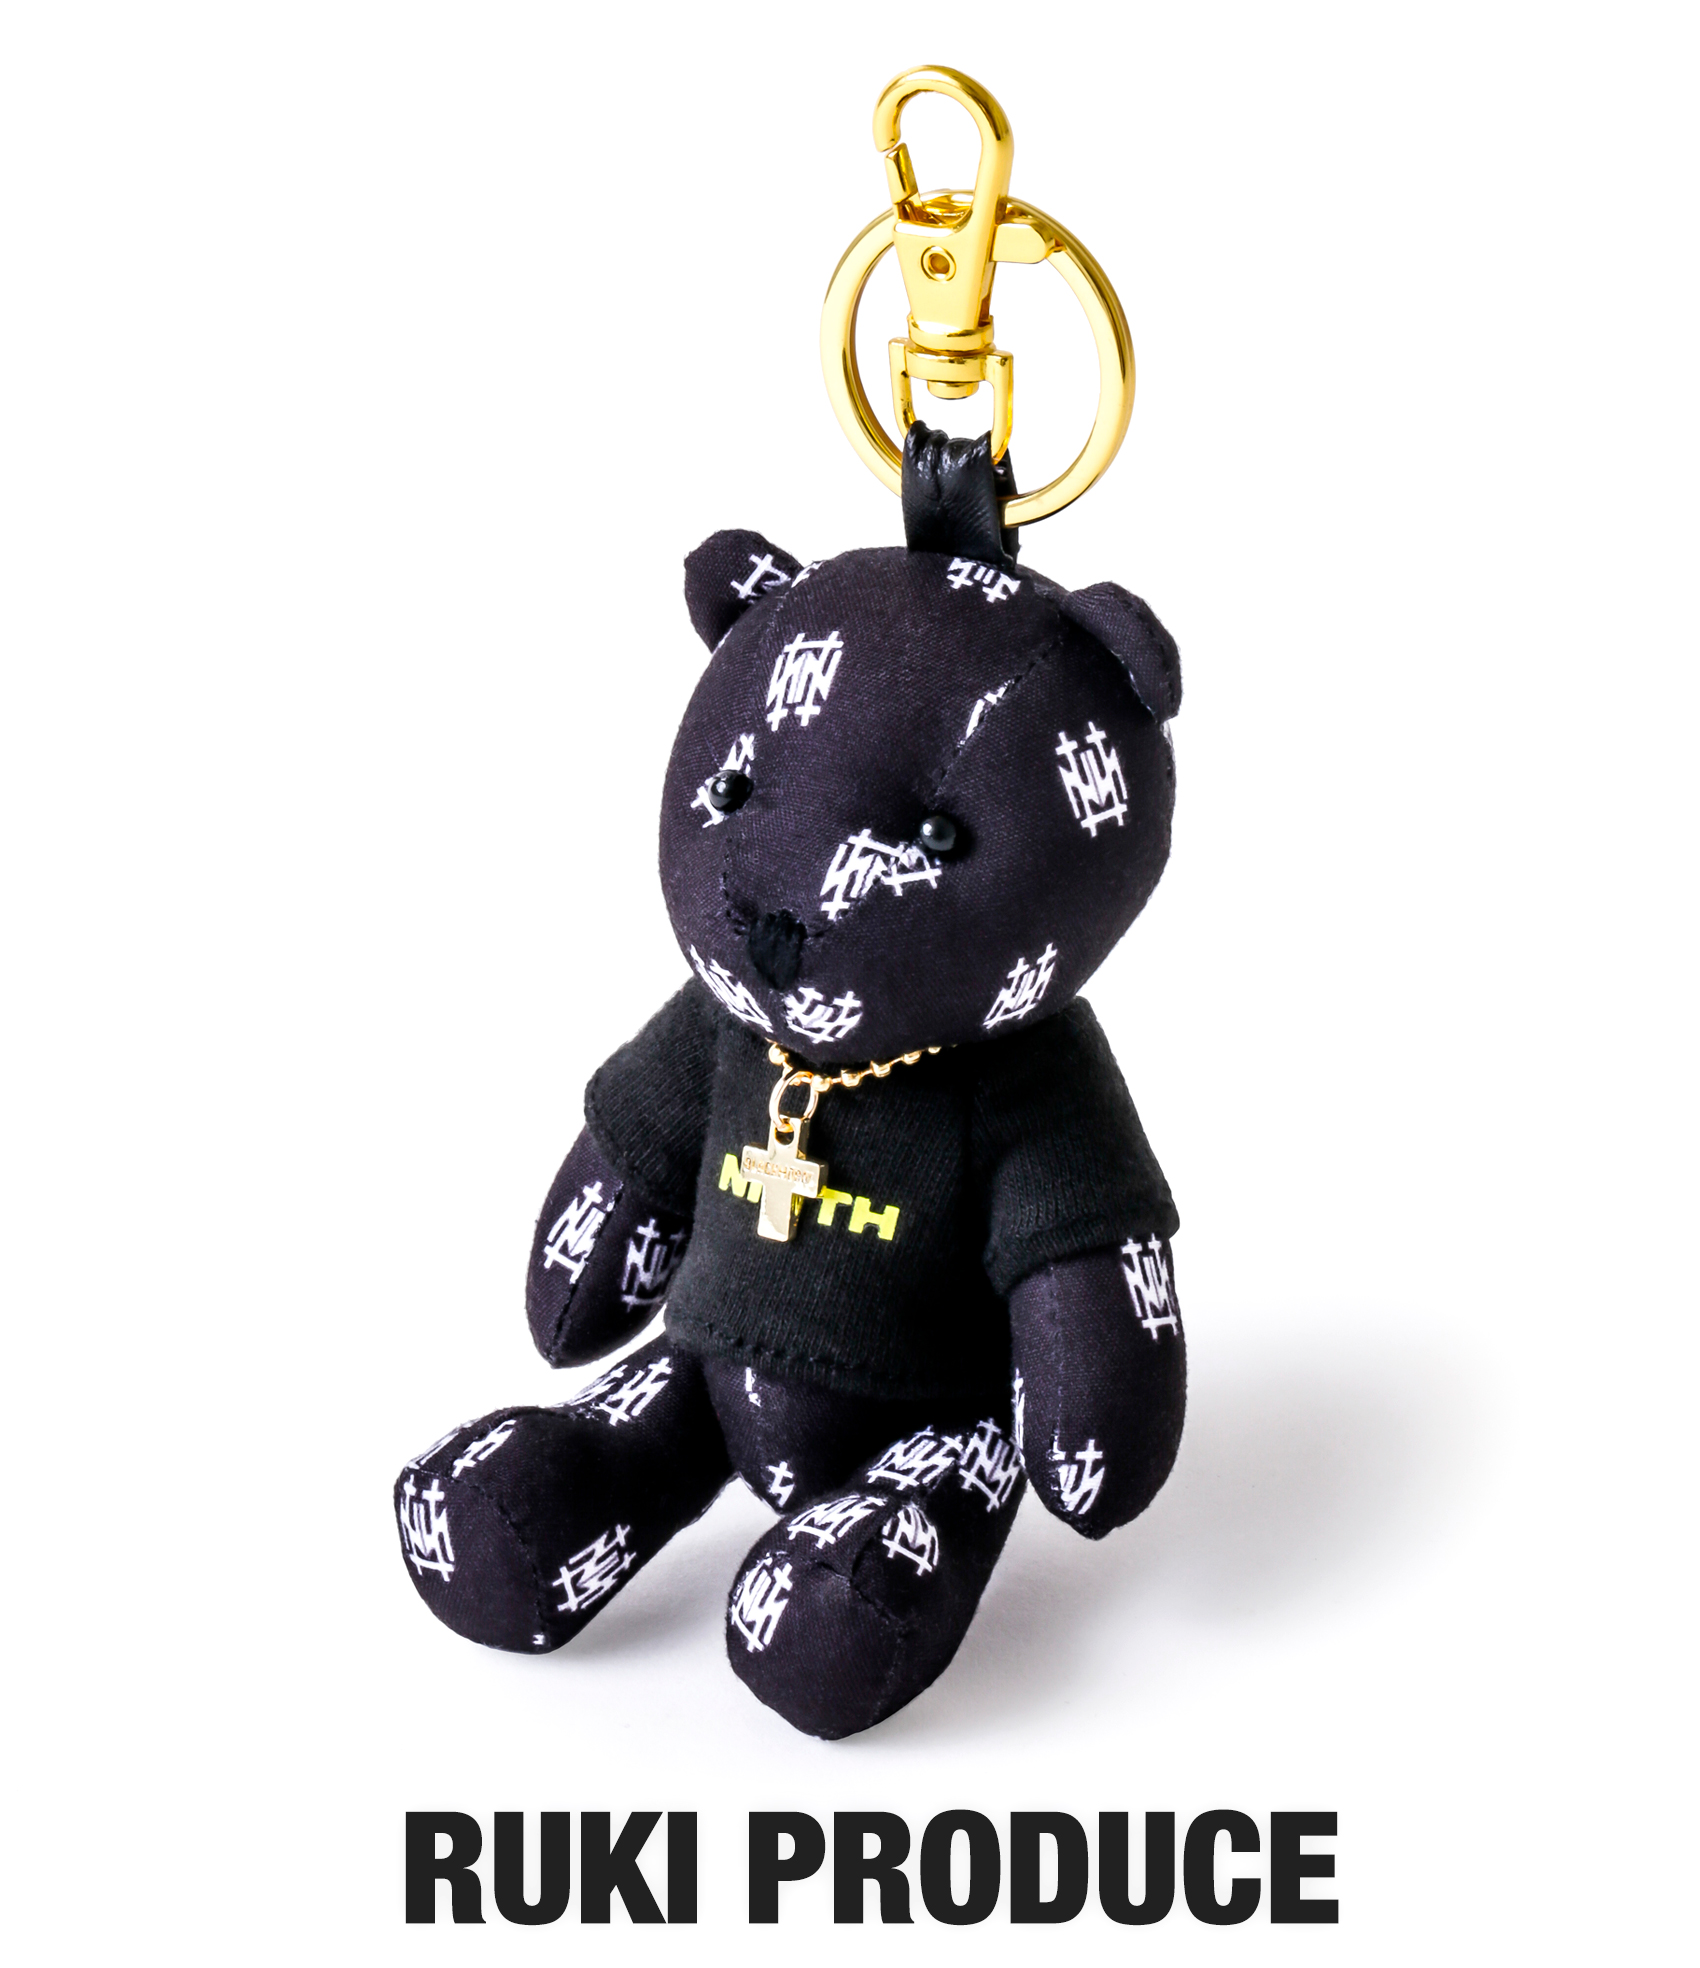 BEAR KEY RING (RUKI PRODUCE)